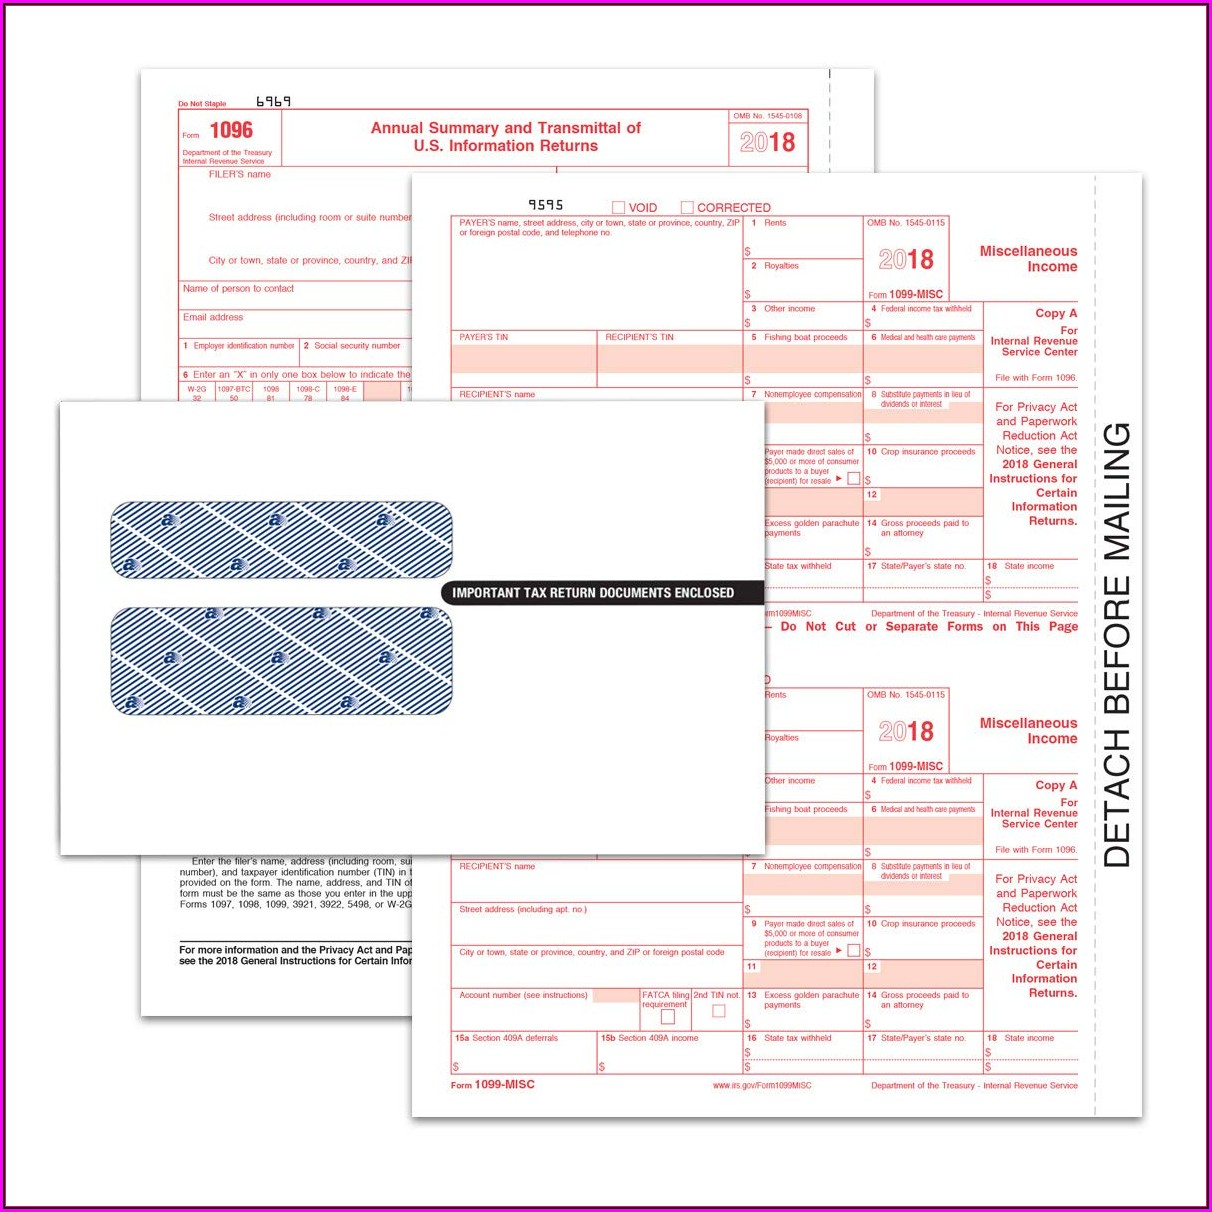 Irs Forms 1096 Misc 2018